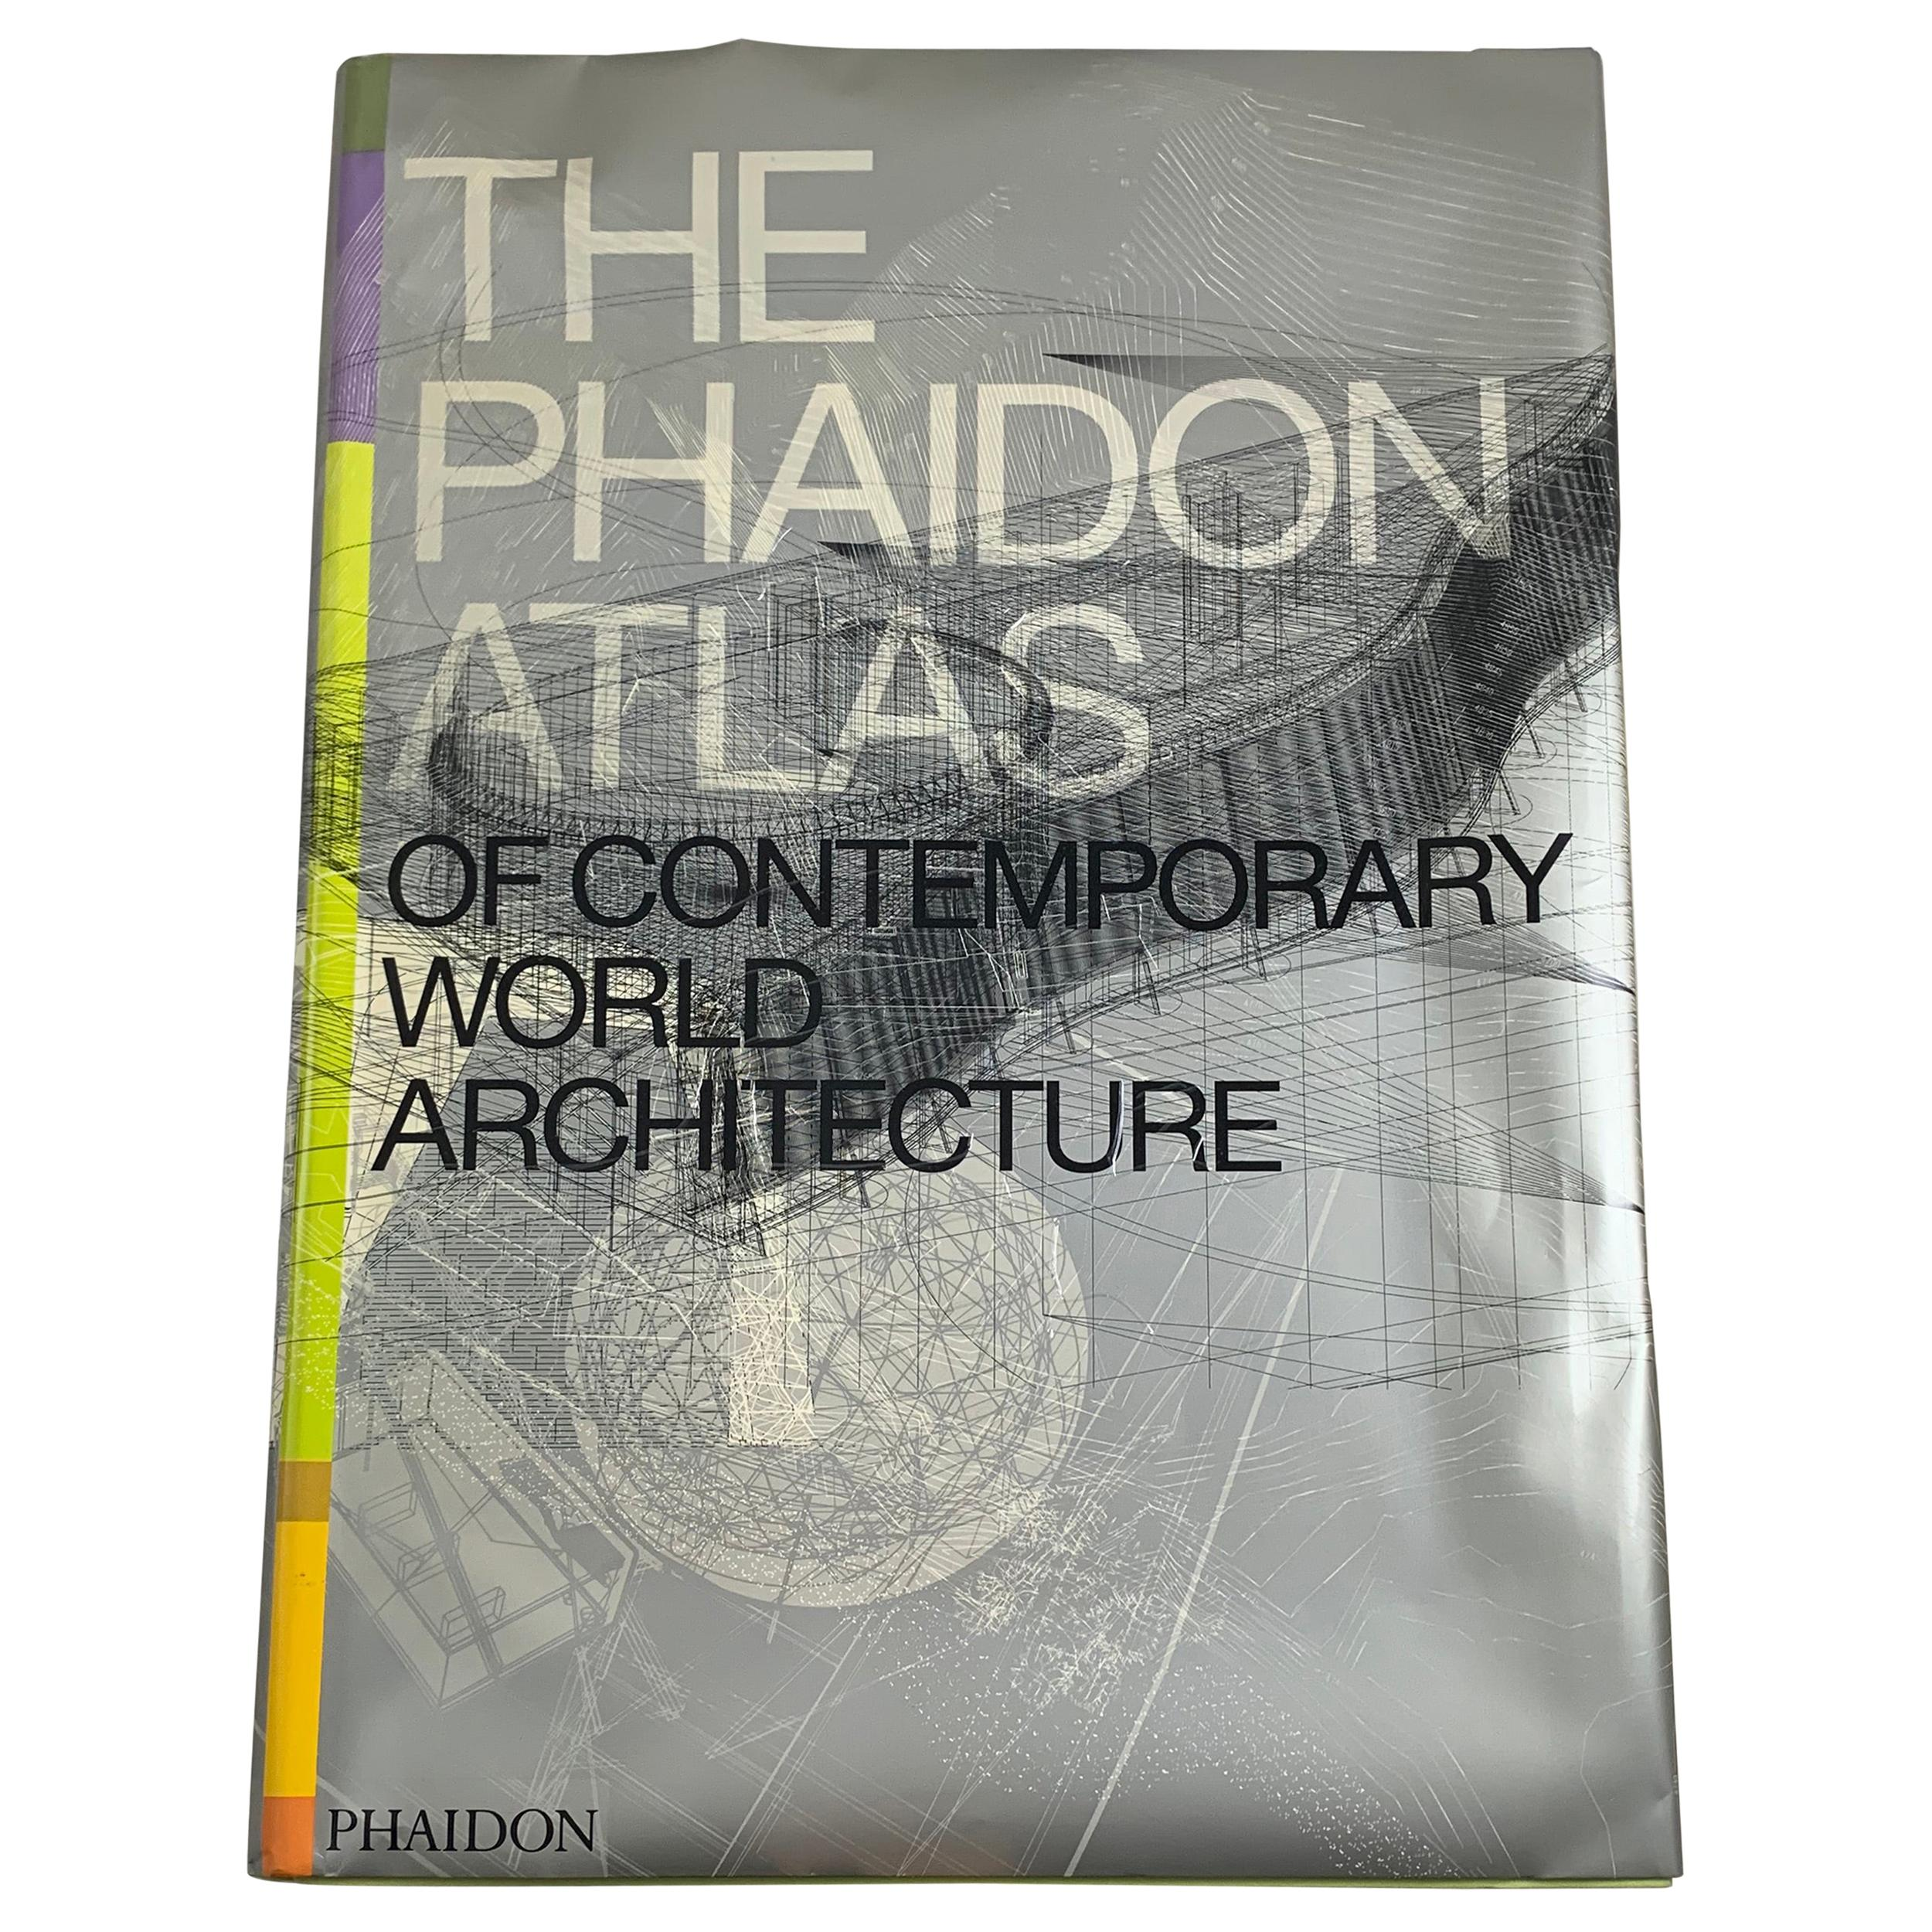 Phaidon Atlas of Contemporary Architecture, Collectible Book in Ghost Carry Case